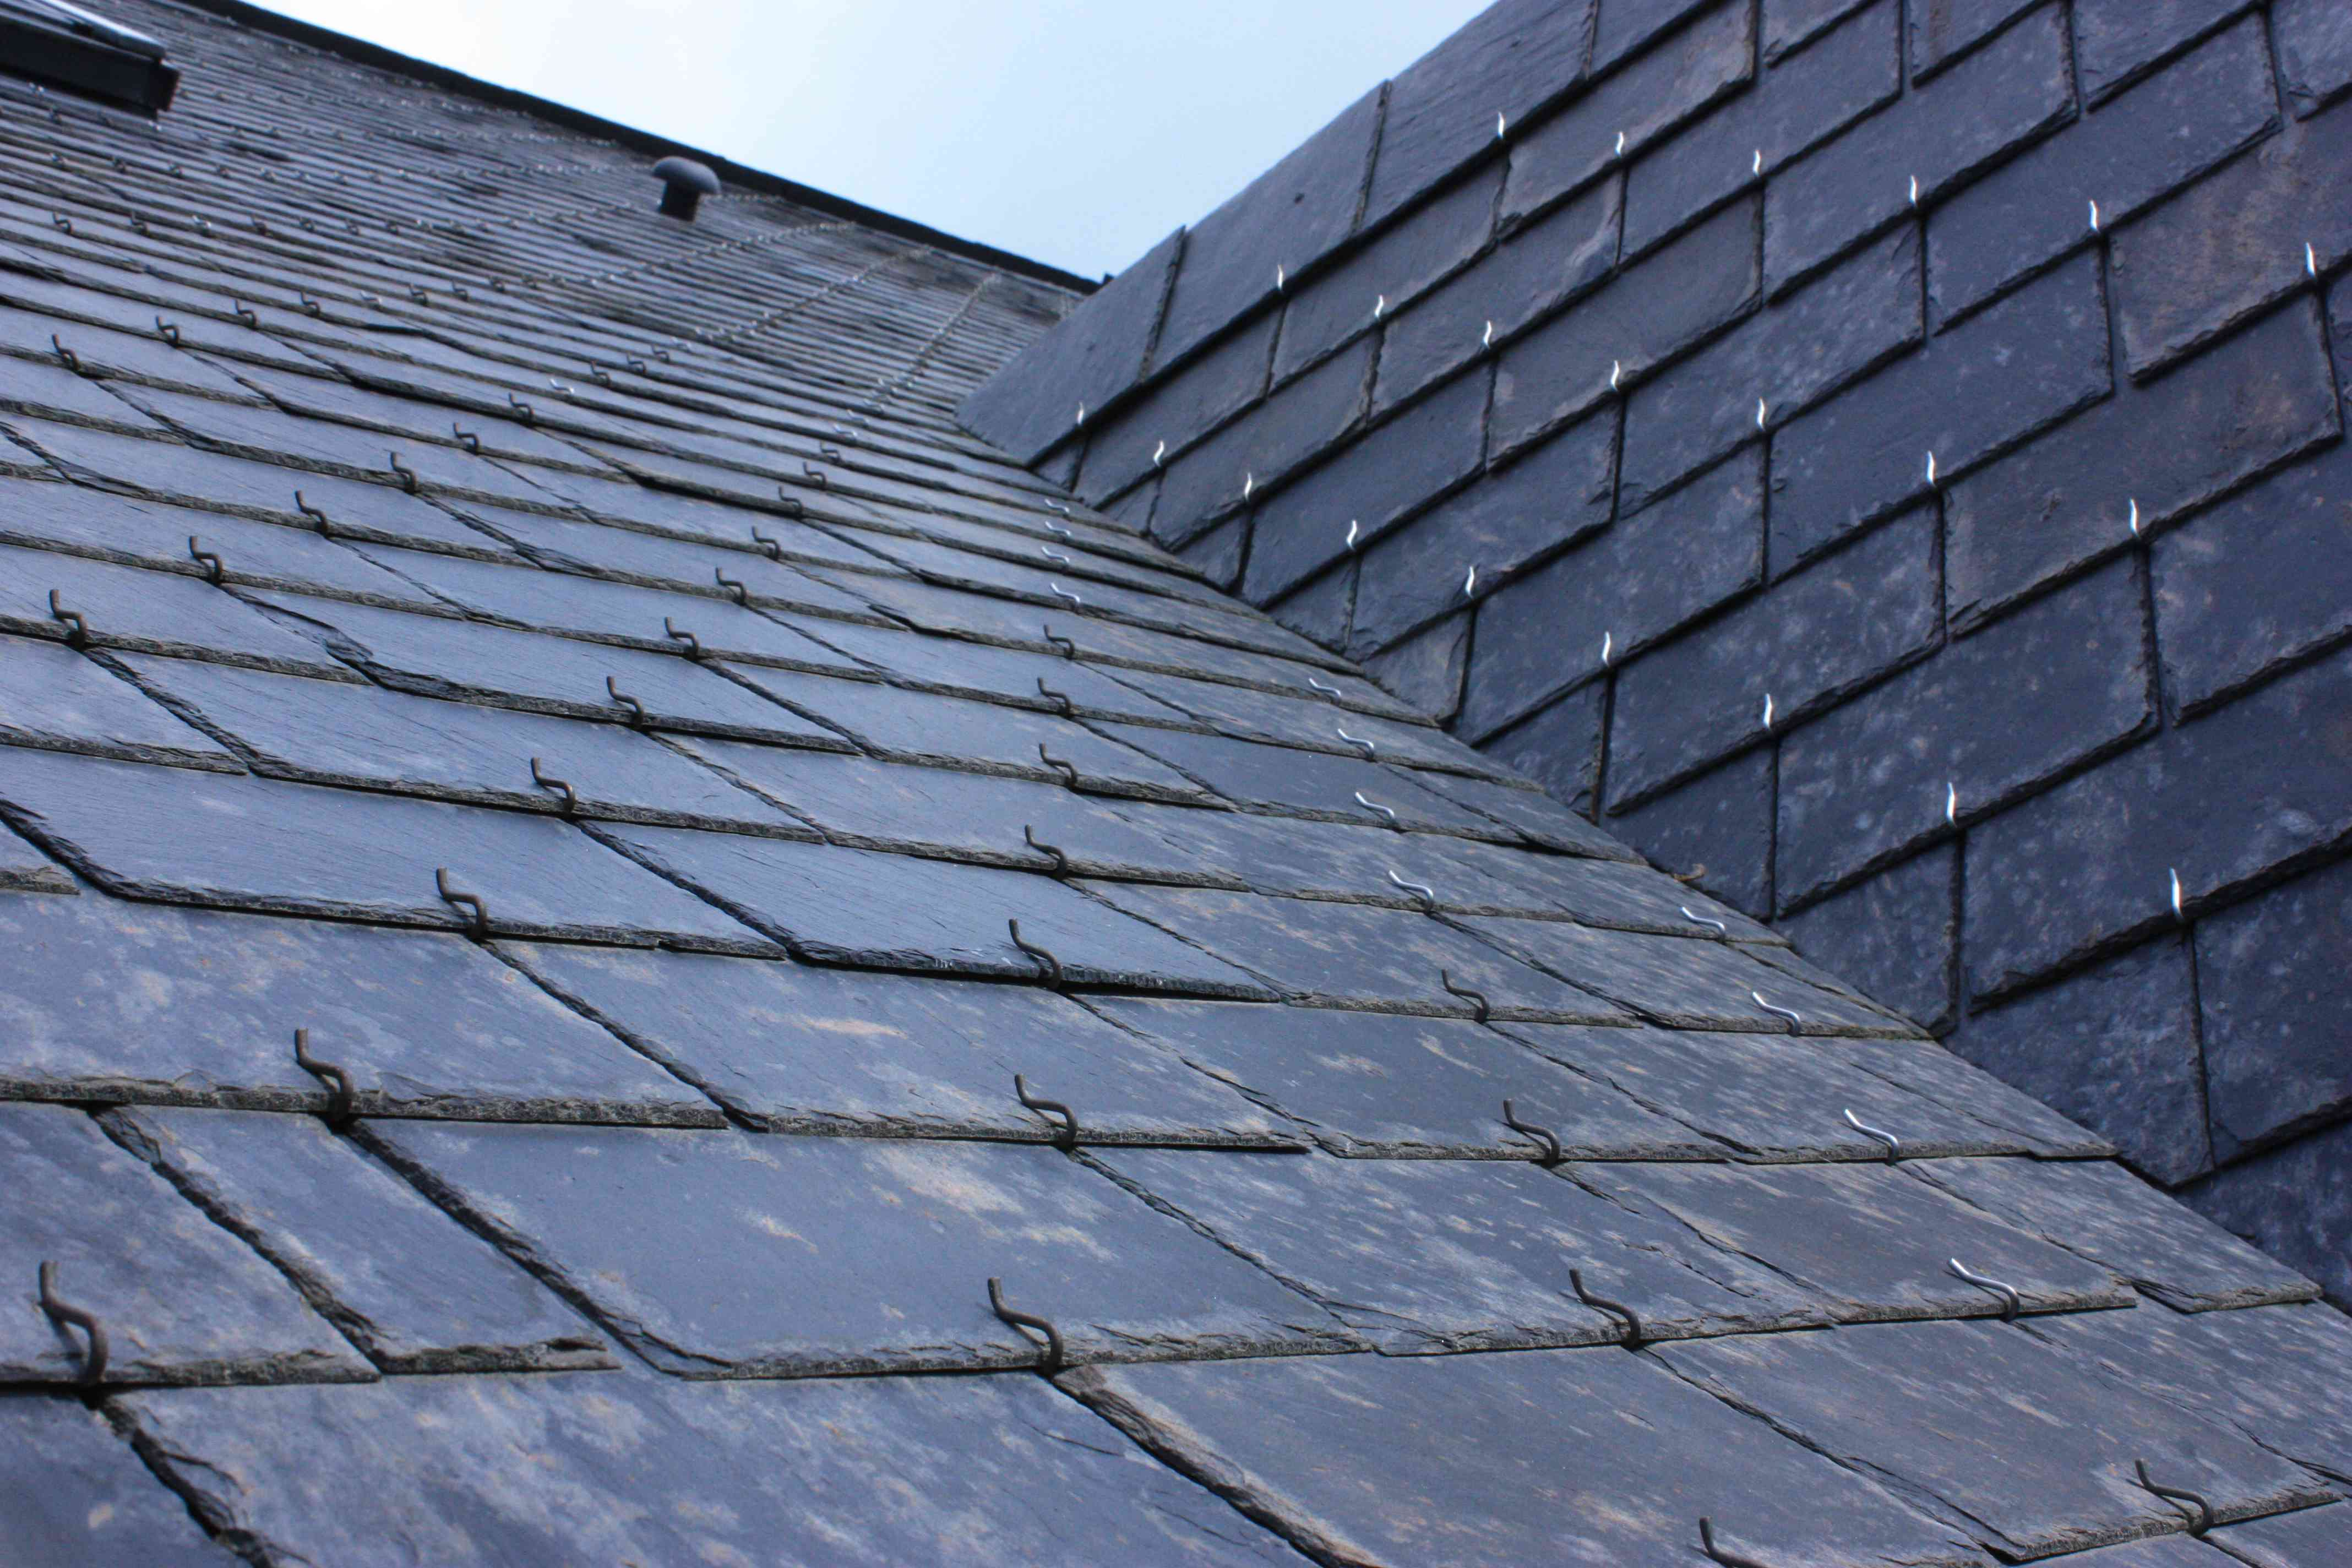 Roof of house in slate tiles